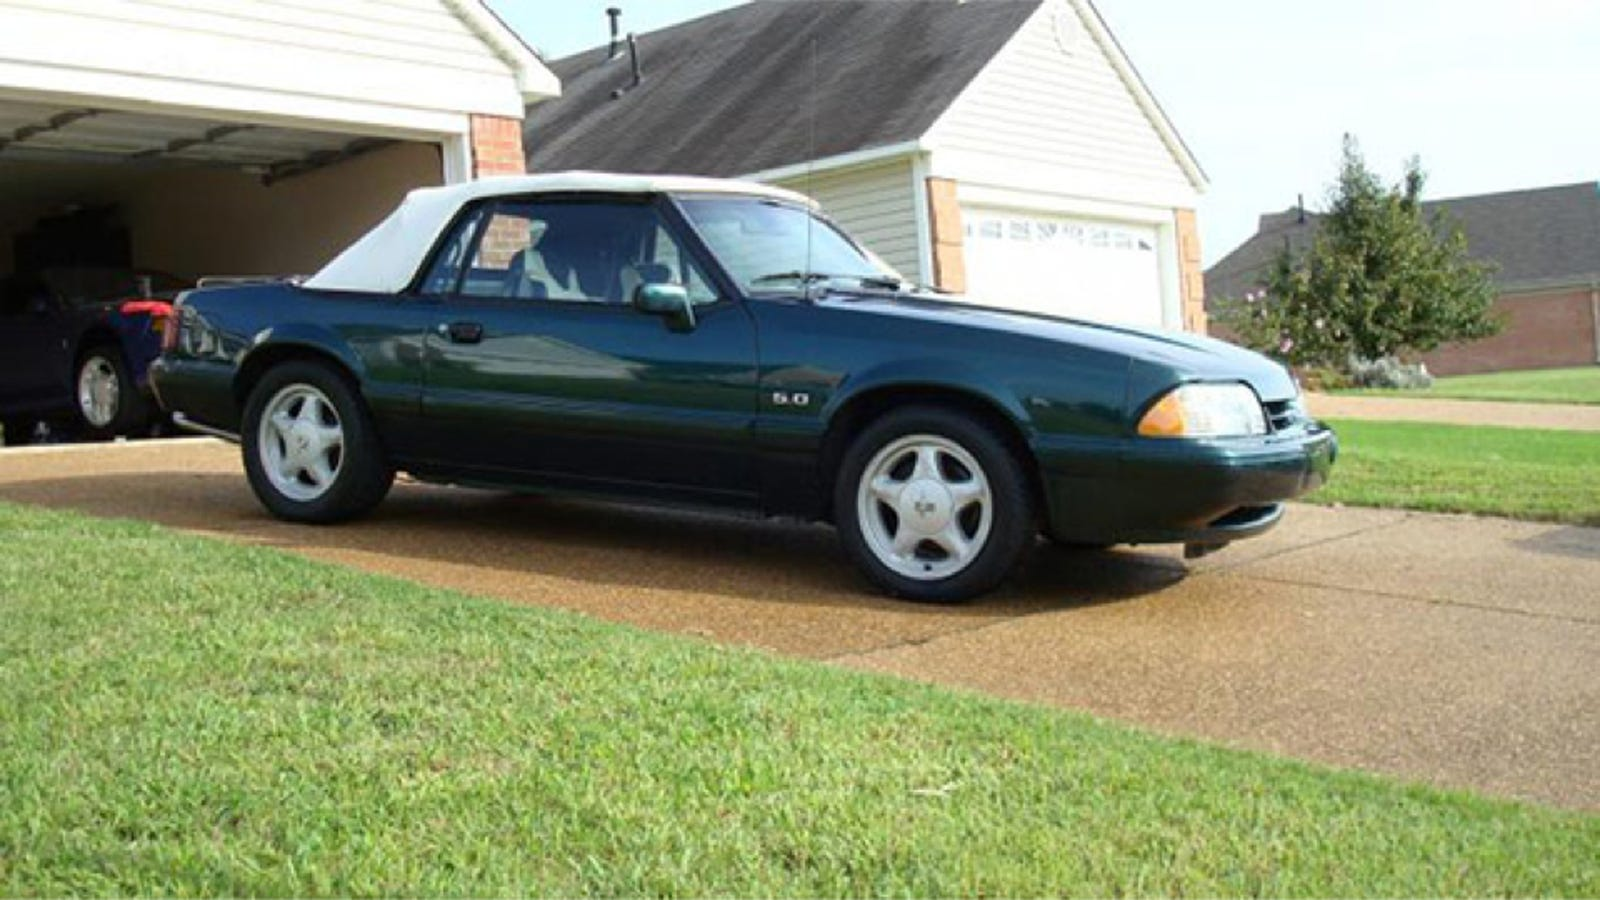 Theft of 7 up mustang proves at least one person likes 7 up